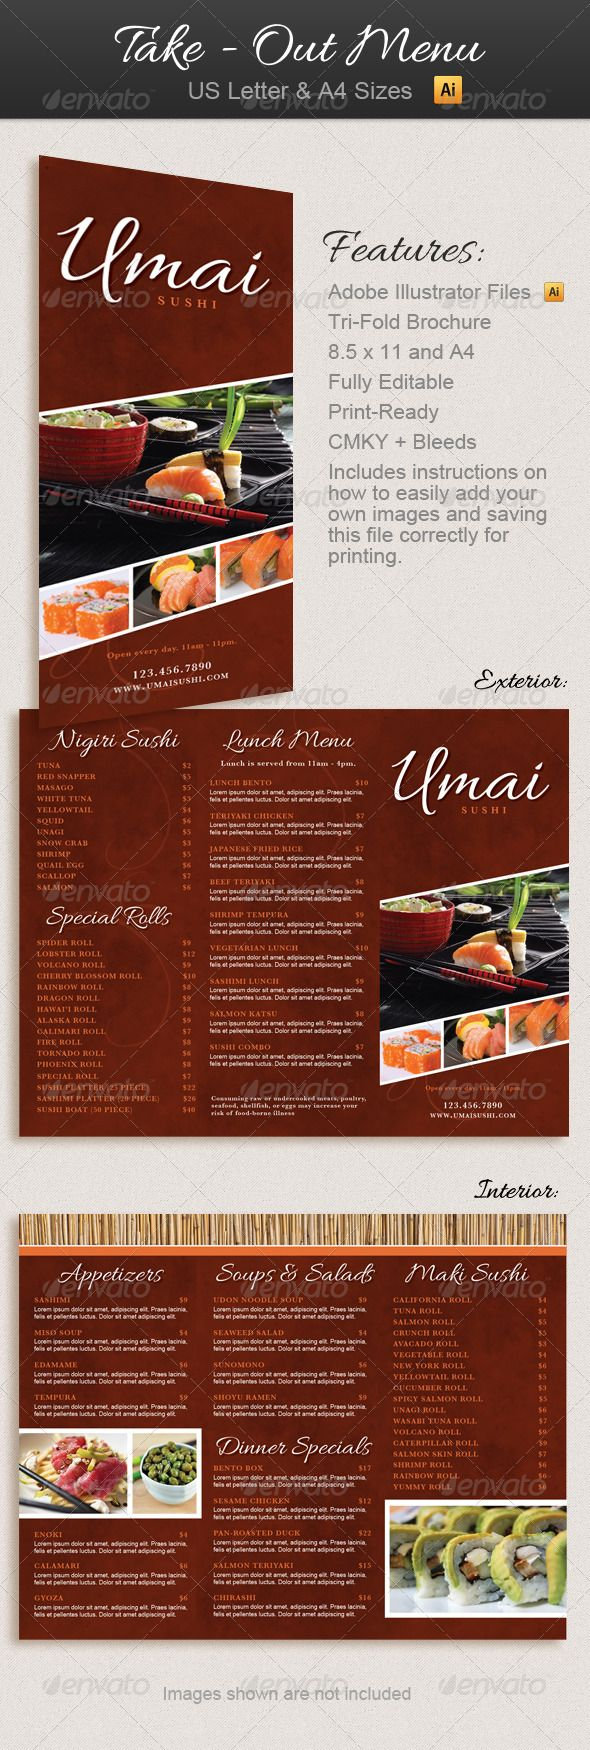 restaurant take out menu trifold brochure food menus print templates download here